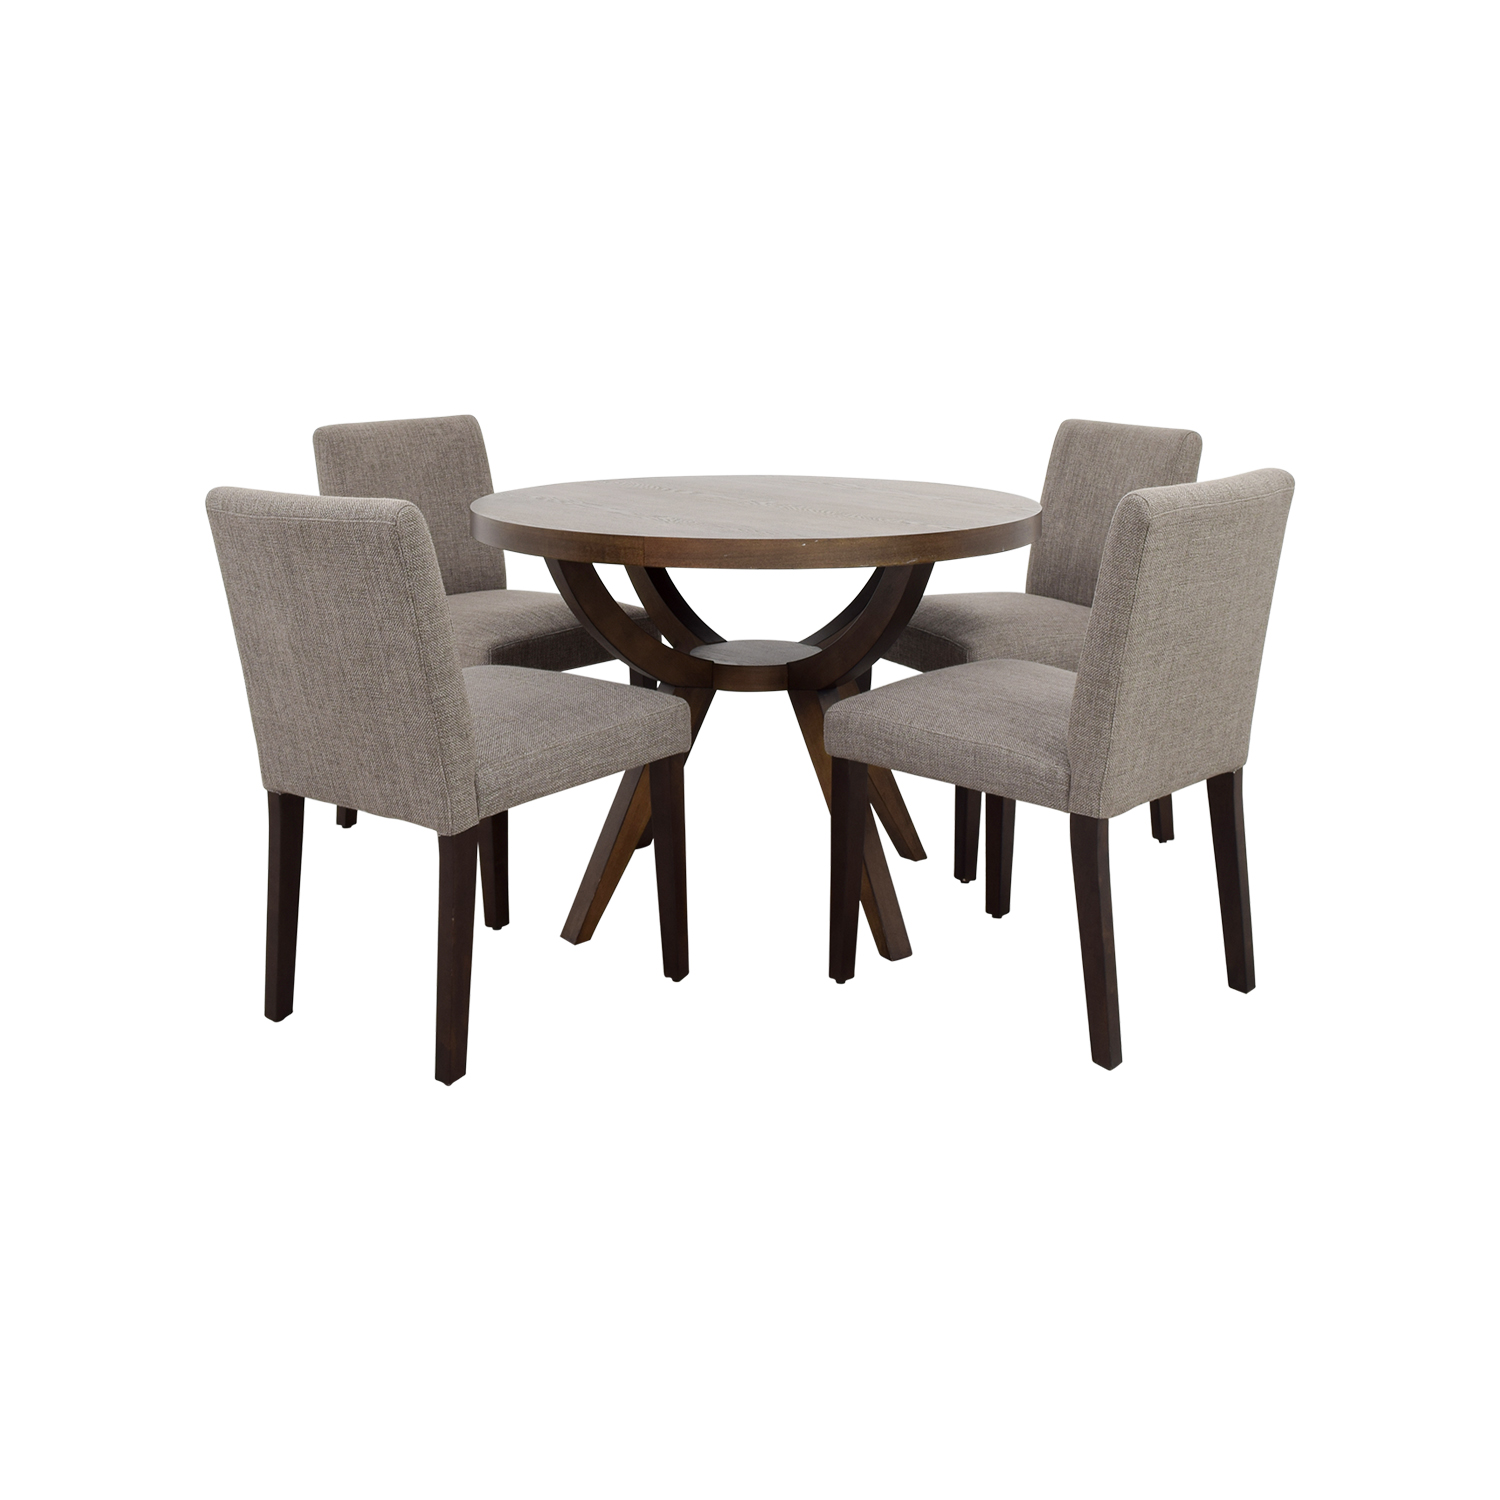 pedestal table and chairs design chair usa dining sets used for sale